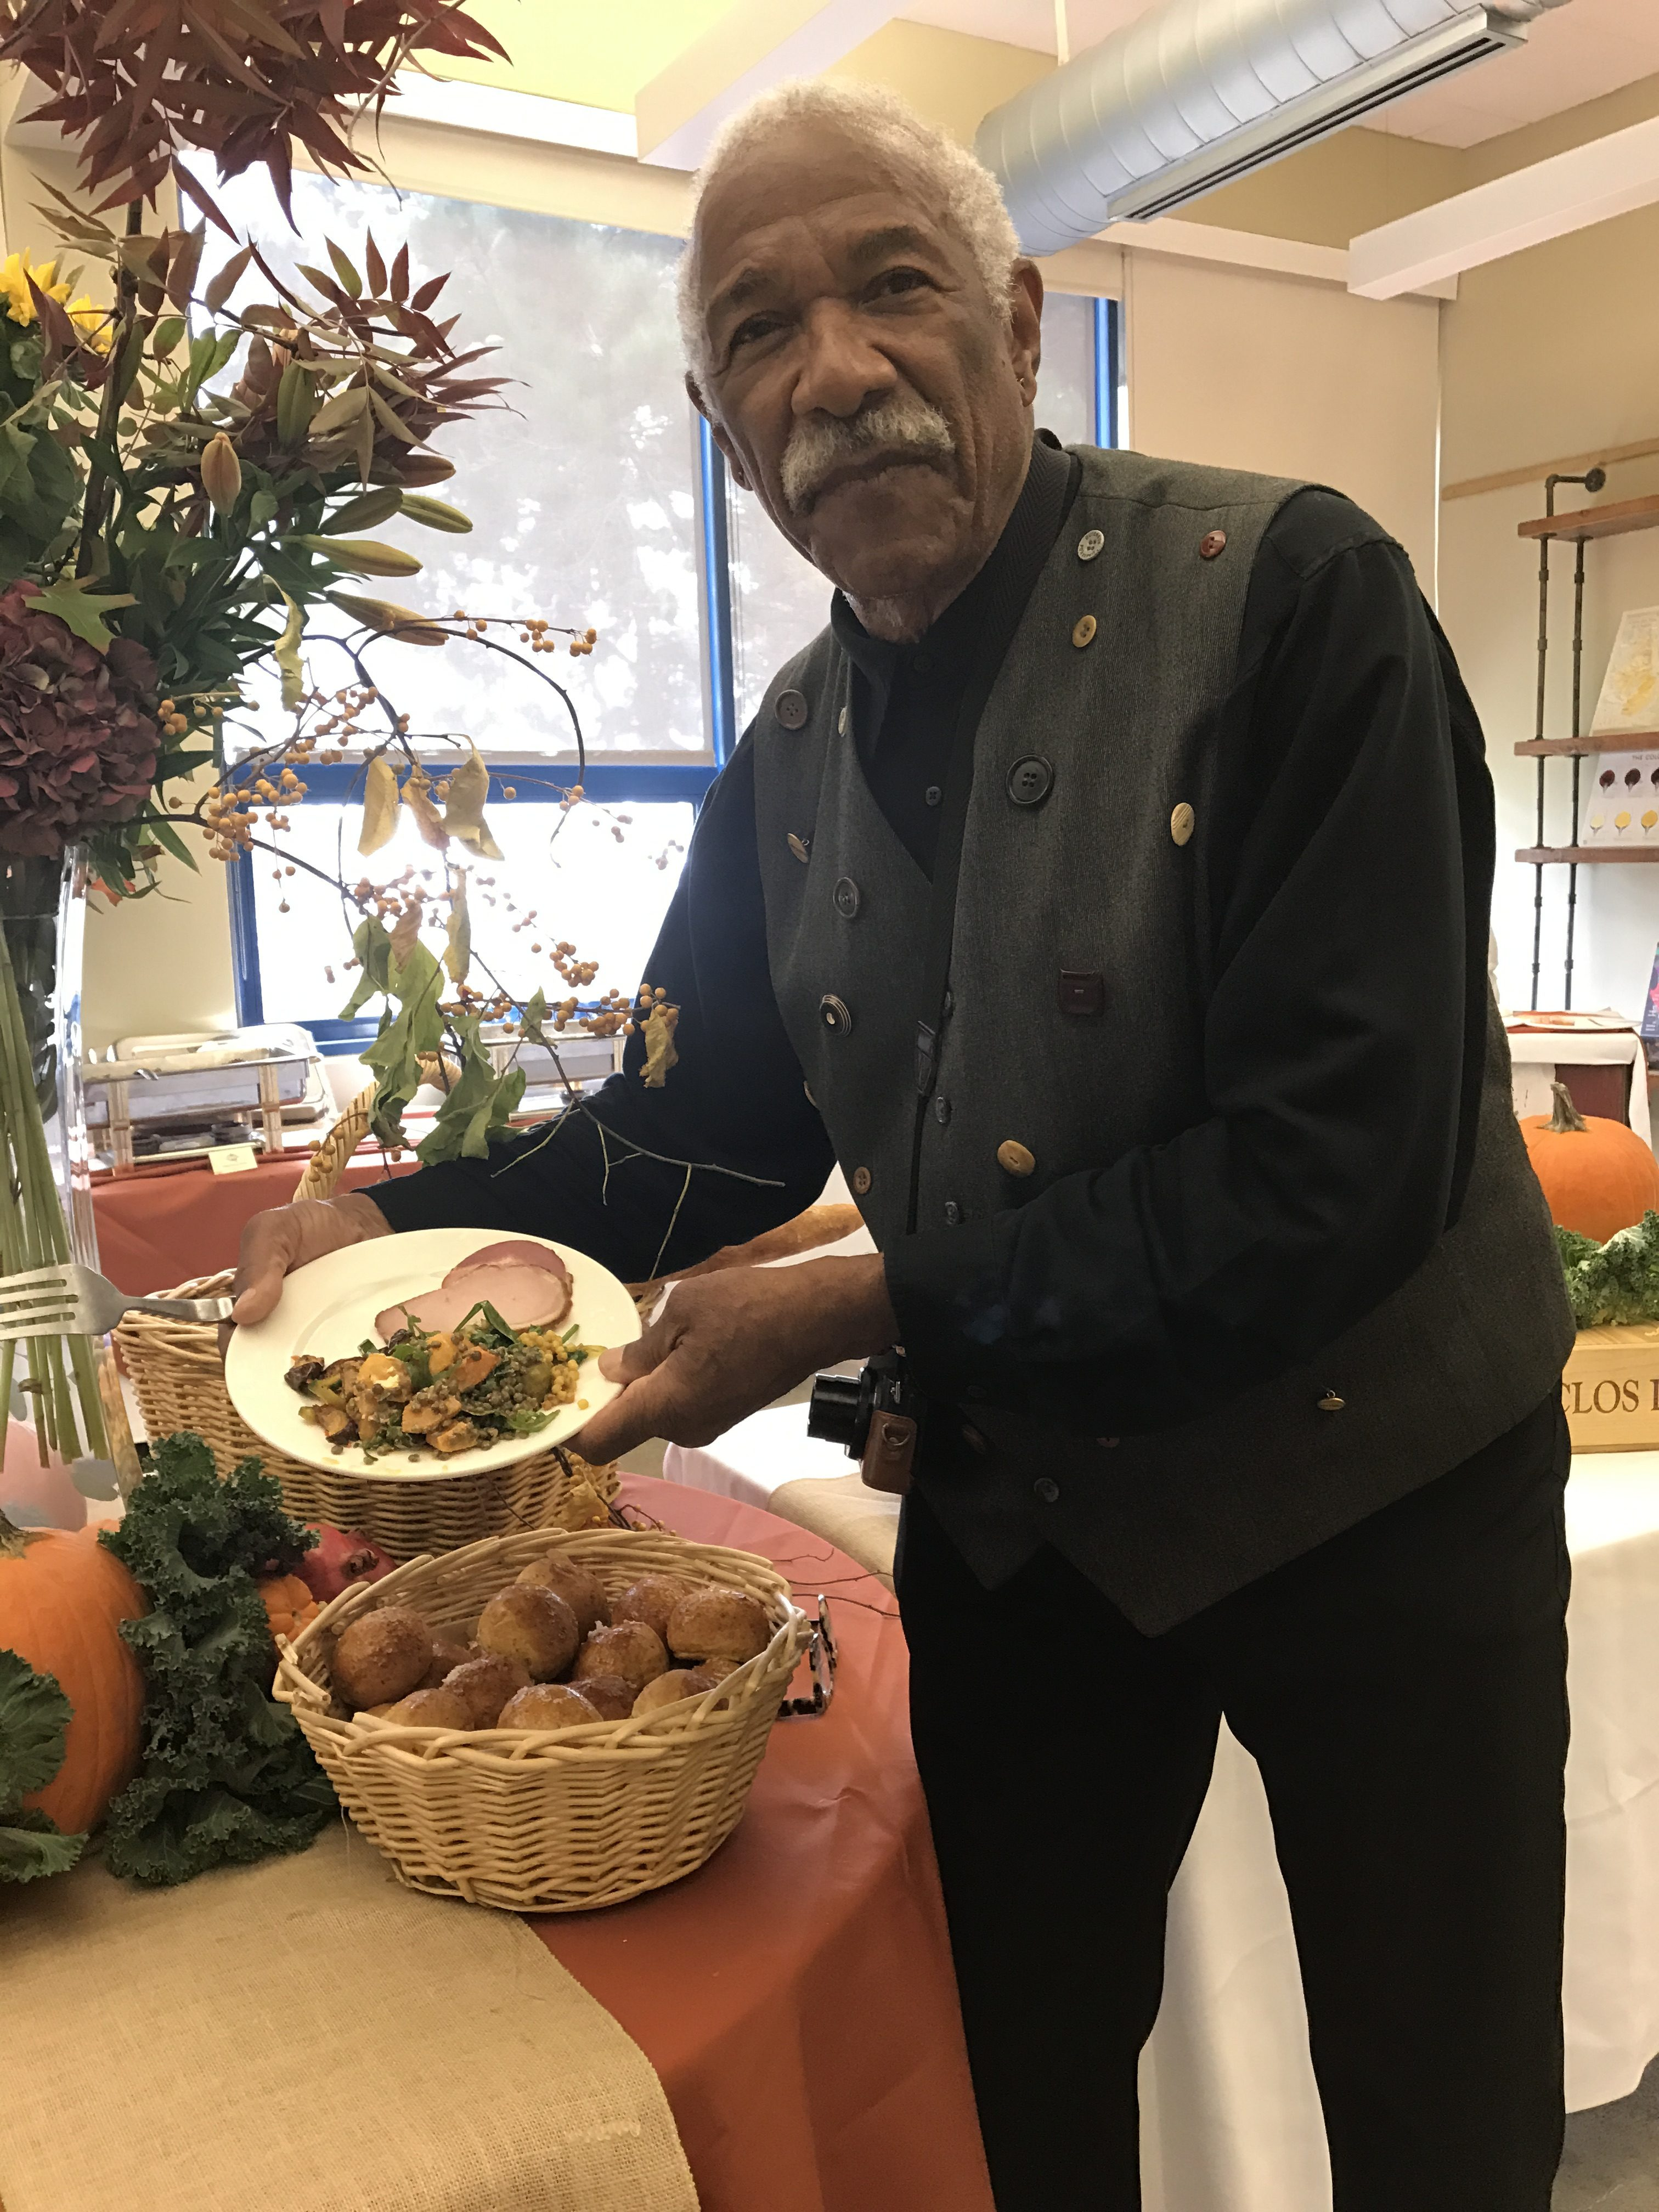 A Fall Harvest Festival attendee enjoys a plate of Autumn food on Wednesday, Oct. 18, 2017. Photo by Diane Carter.